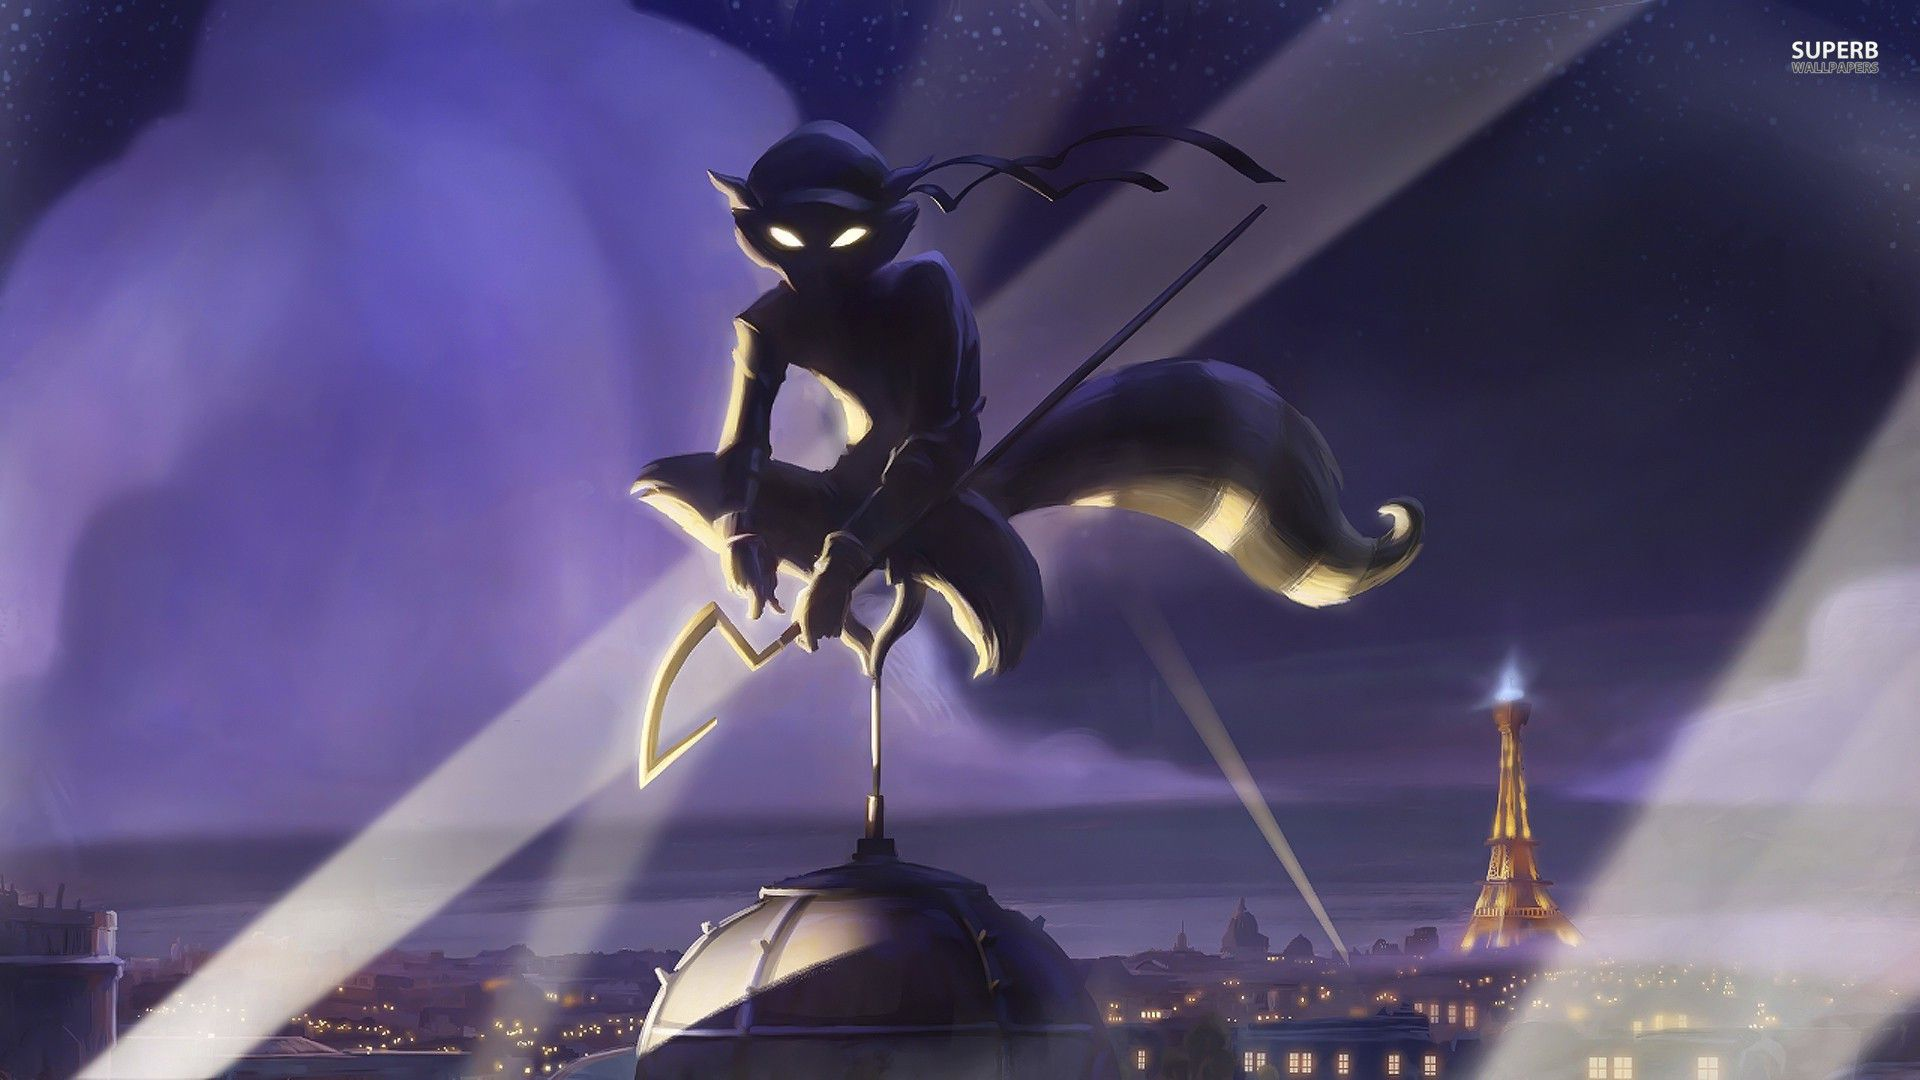 Sly Cooper Wallpapers 1920x1080